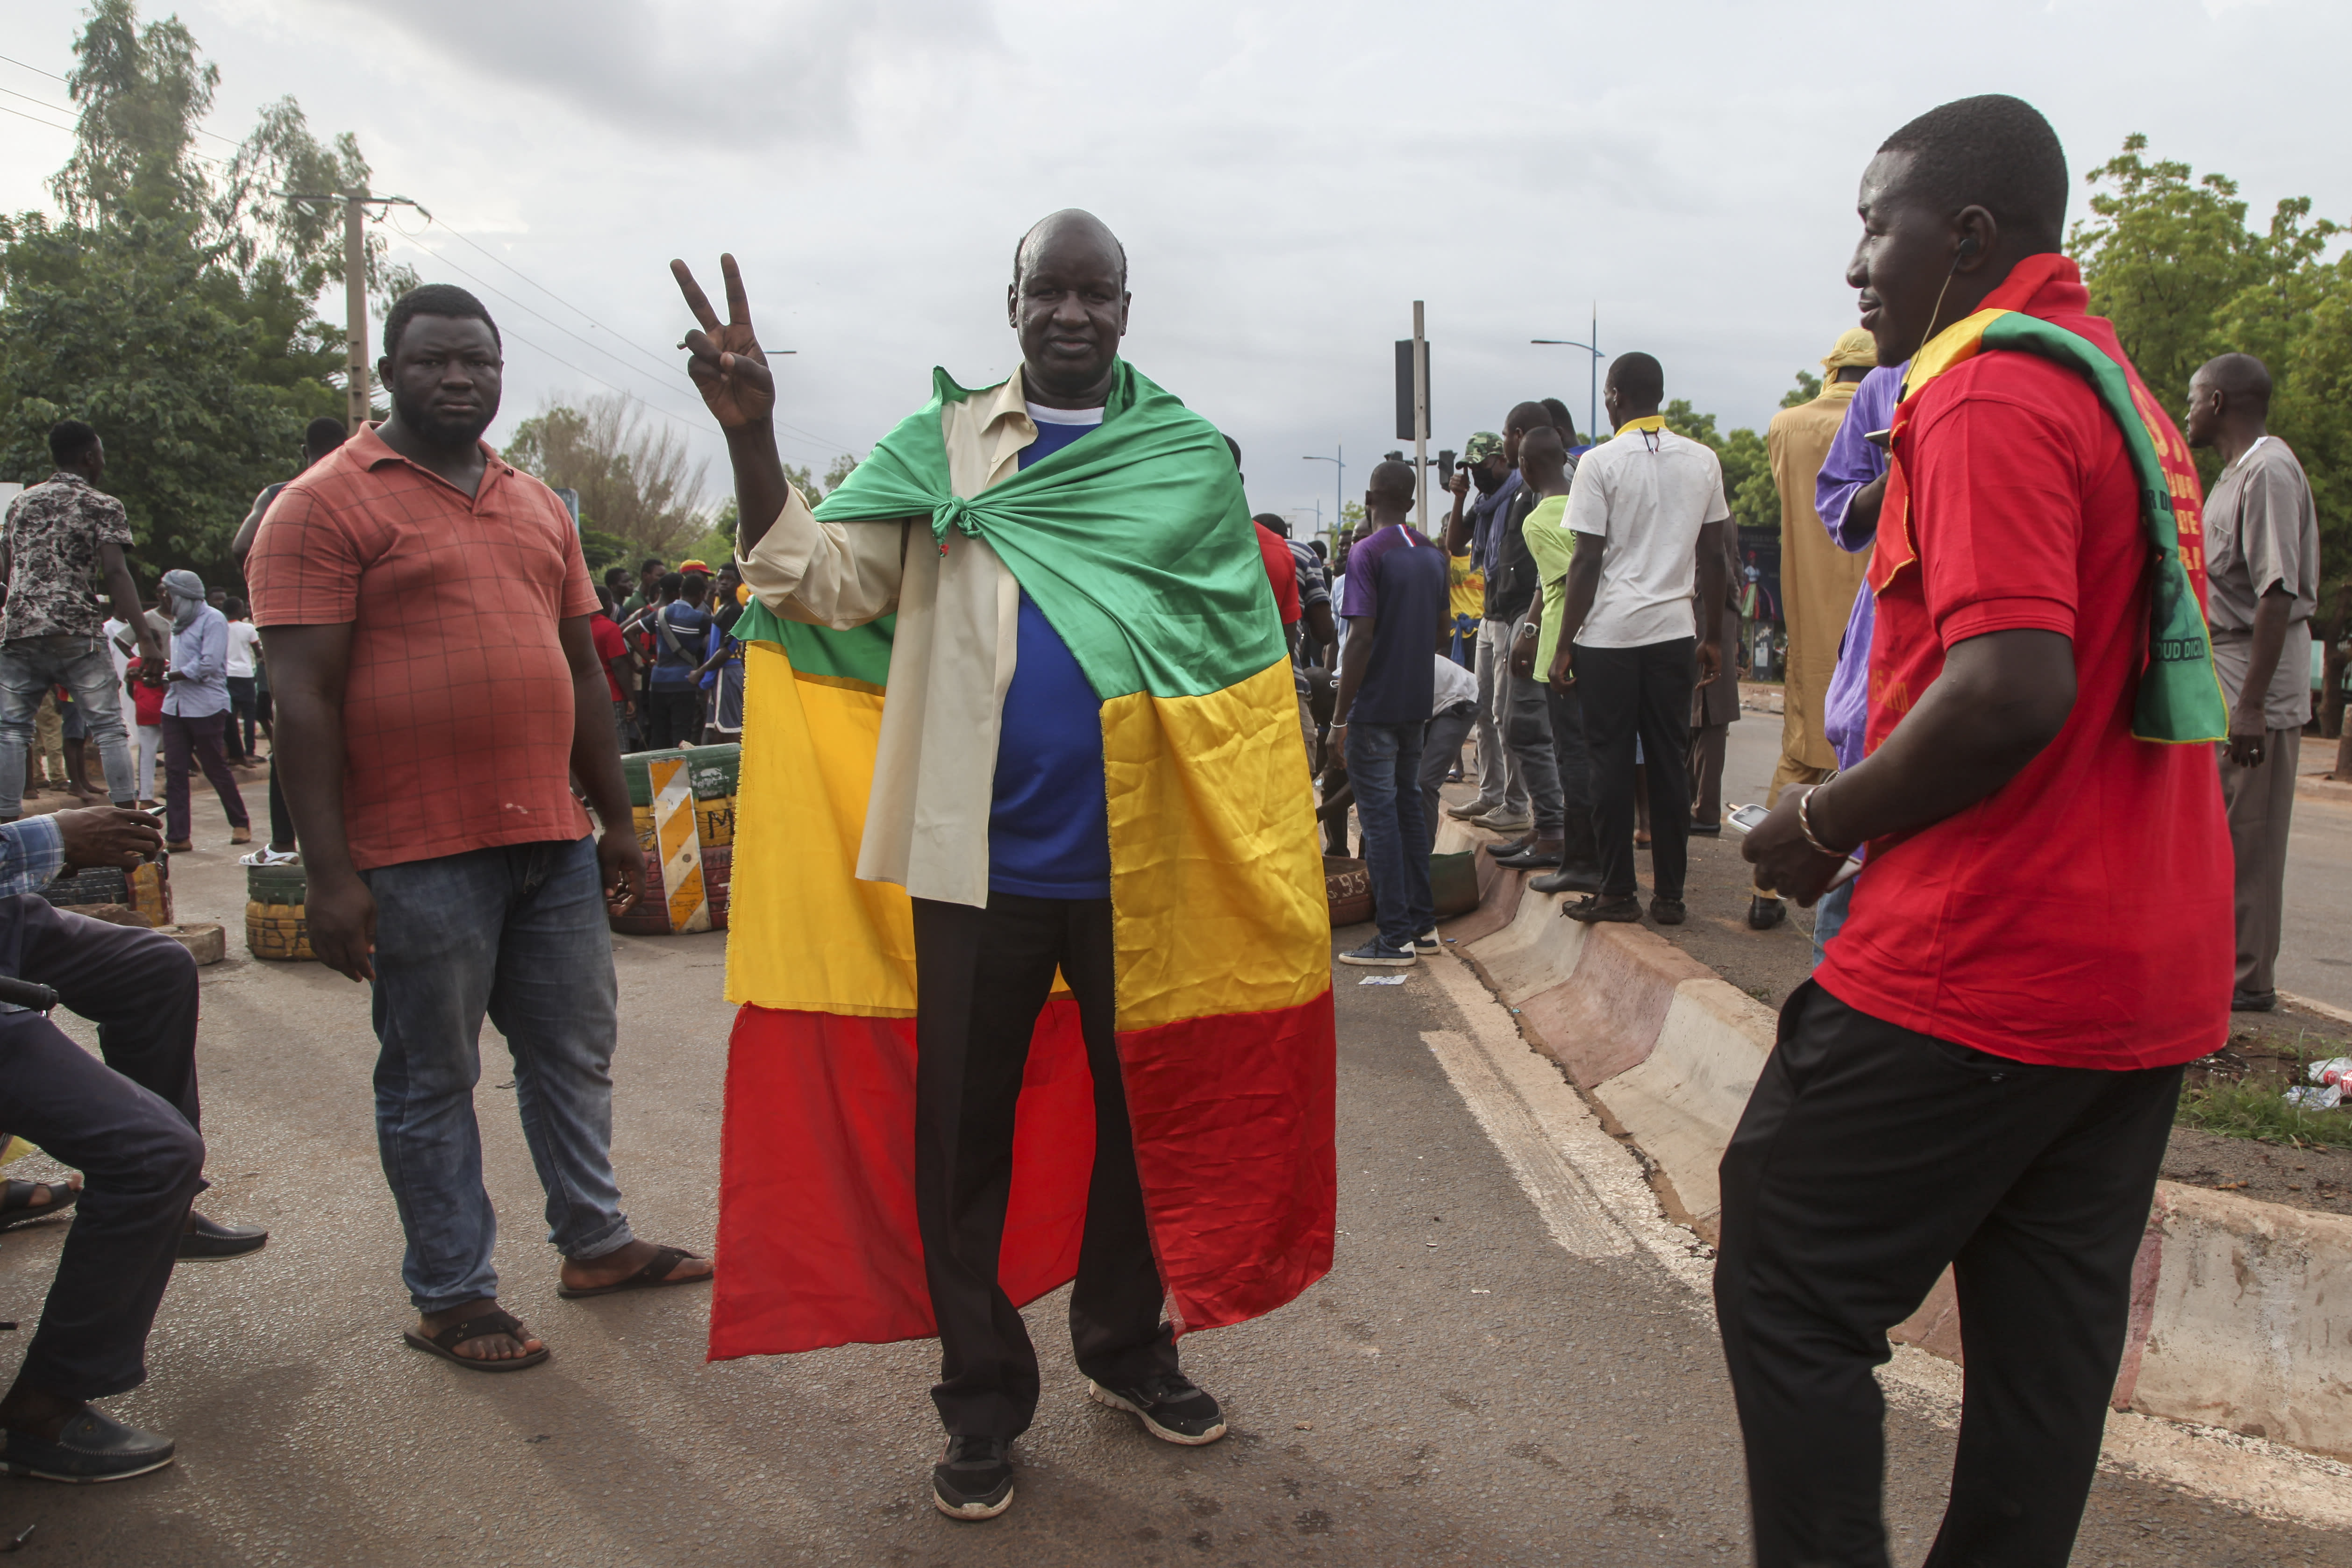 Anti-government protesters demonstrate in the capital Bamako, Mali Friday, July 10, 2020. Thousands marched Friday in Mali's capital in anti-government demonstrations urged by an opposition group that rejects the president's promises of reforms. (AP Photo/Baba Ahmed)